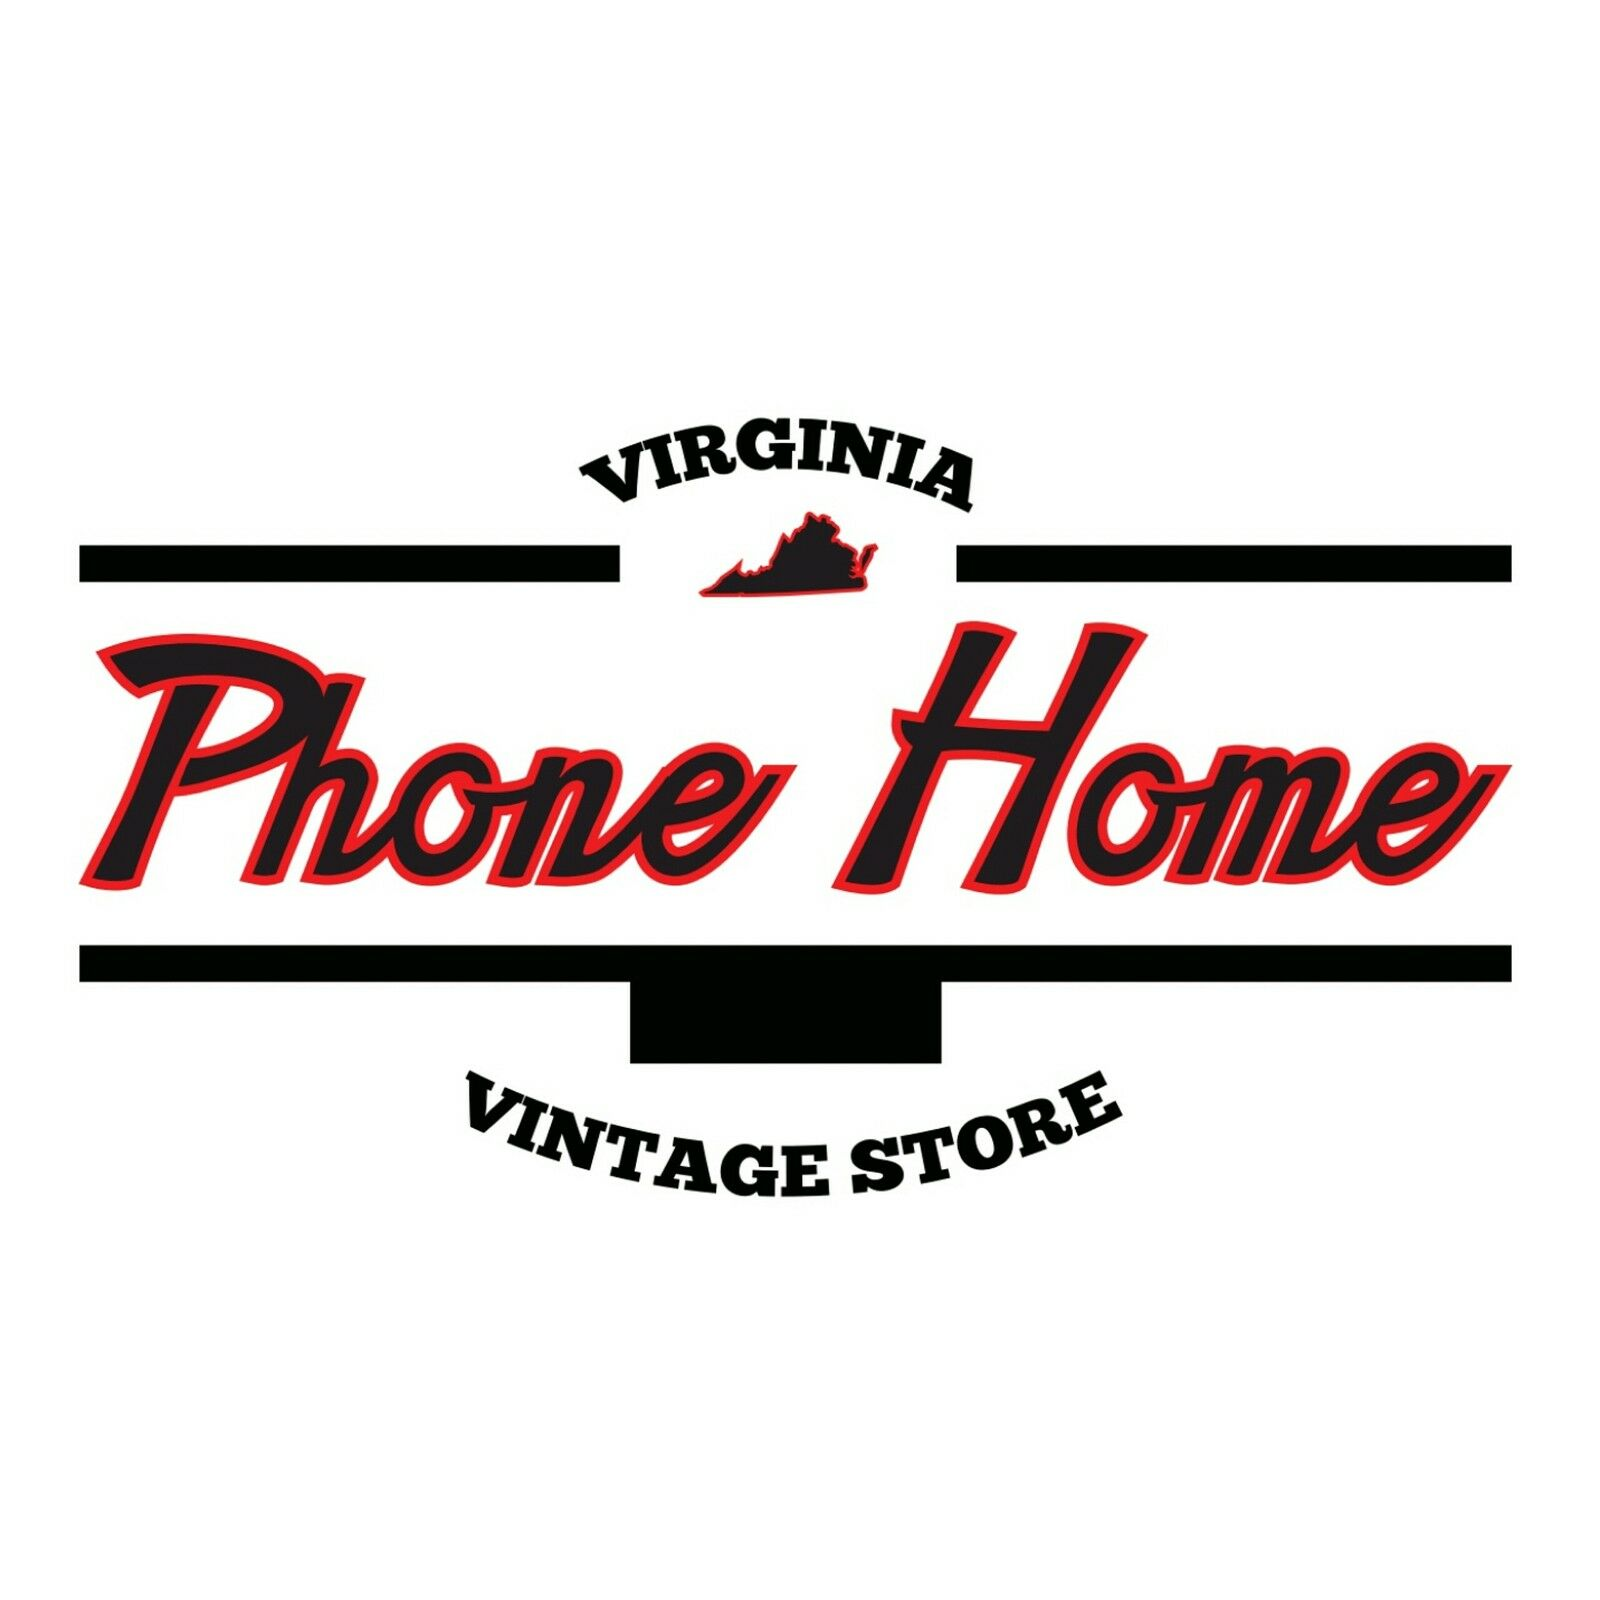 Phone Home Vintage Store